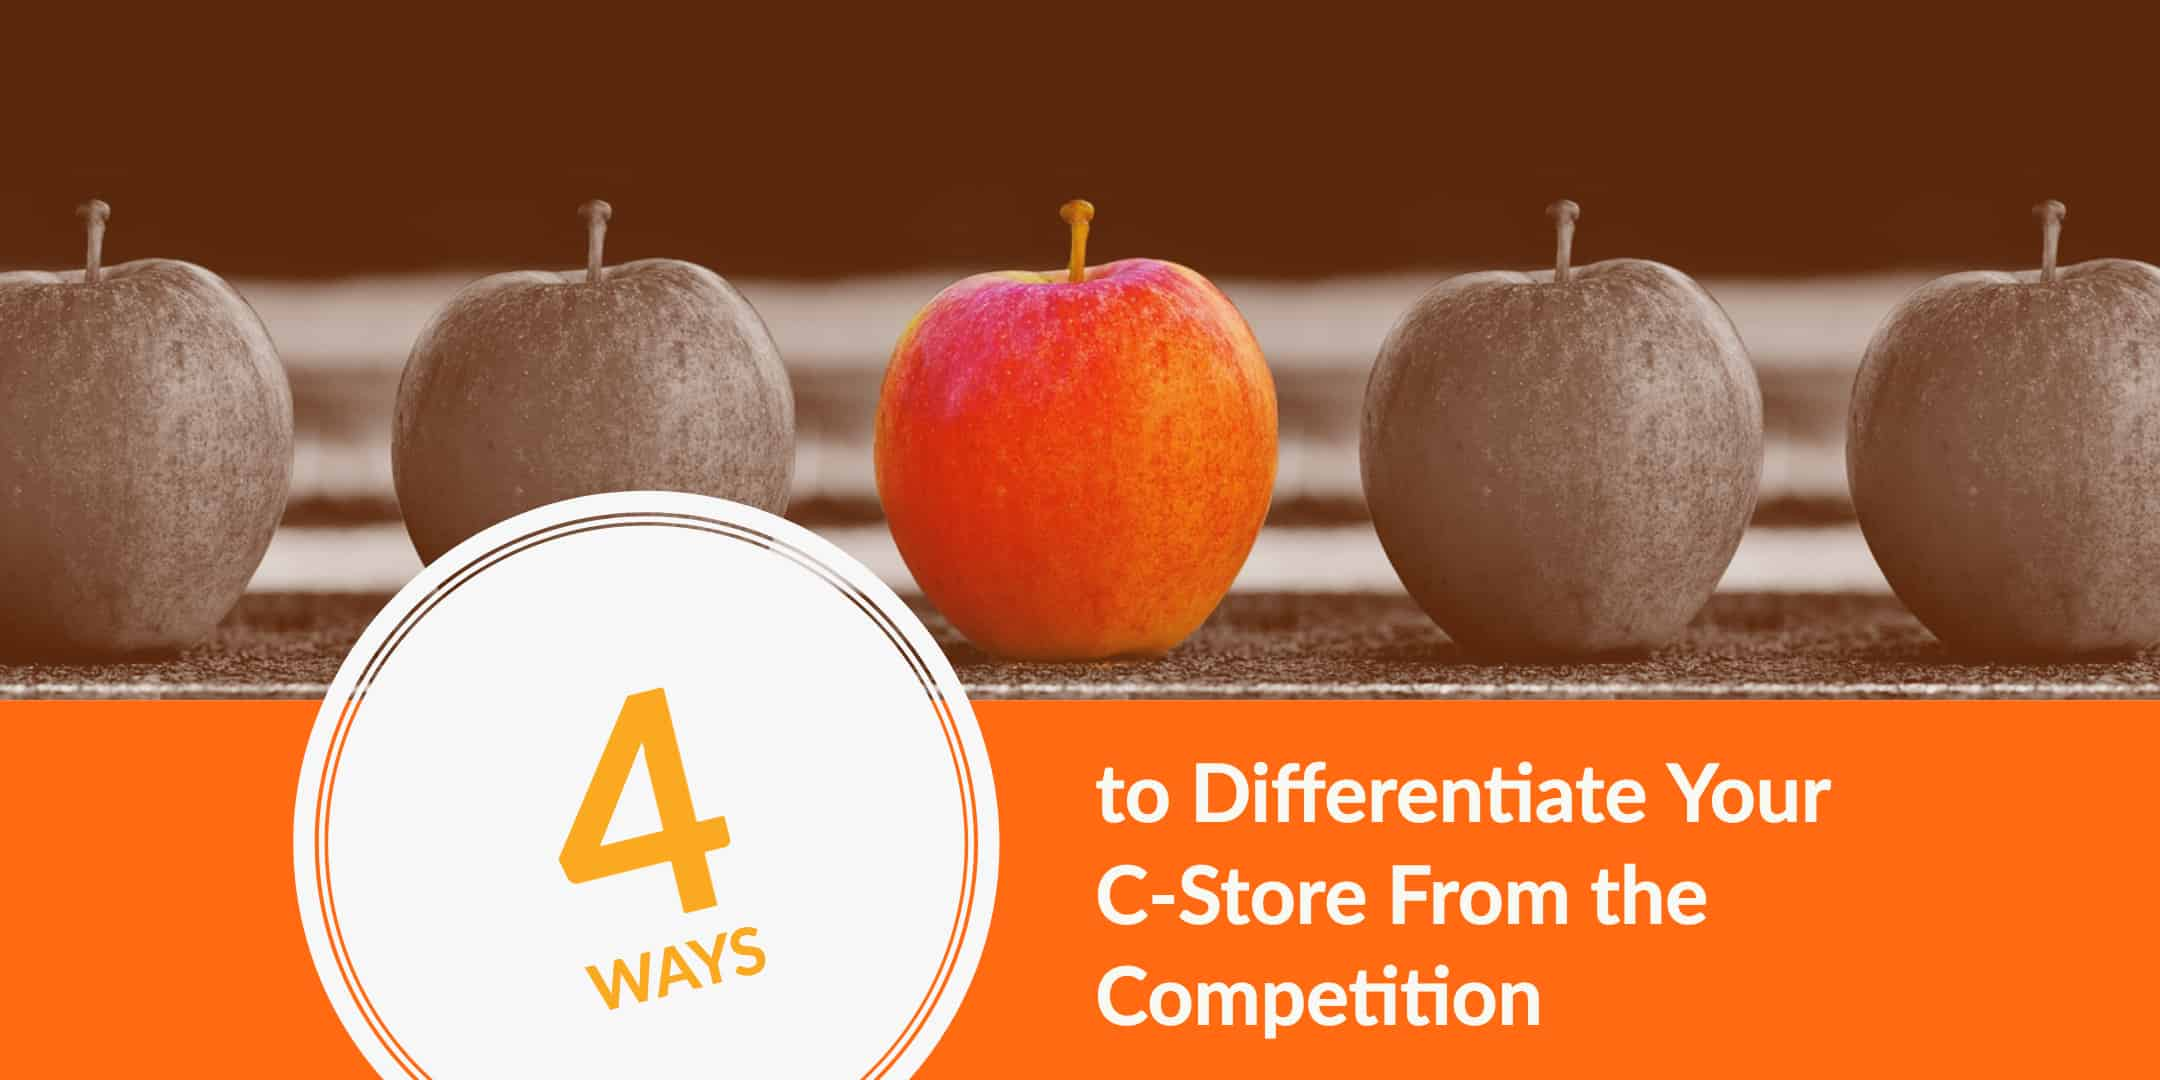 4 Ways to Differentiate Your C-Store from the Competition StrasGlobal